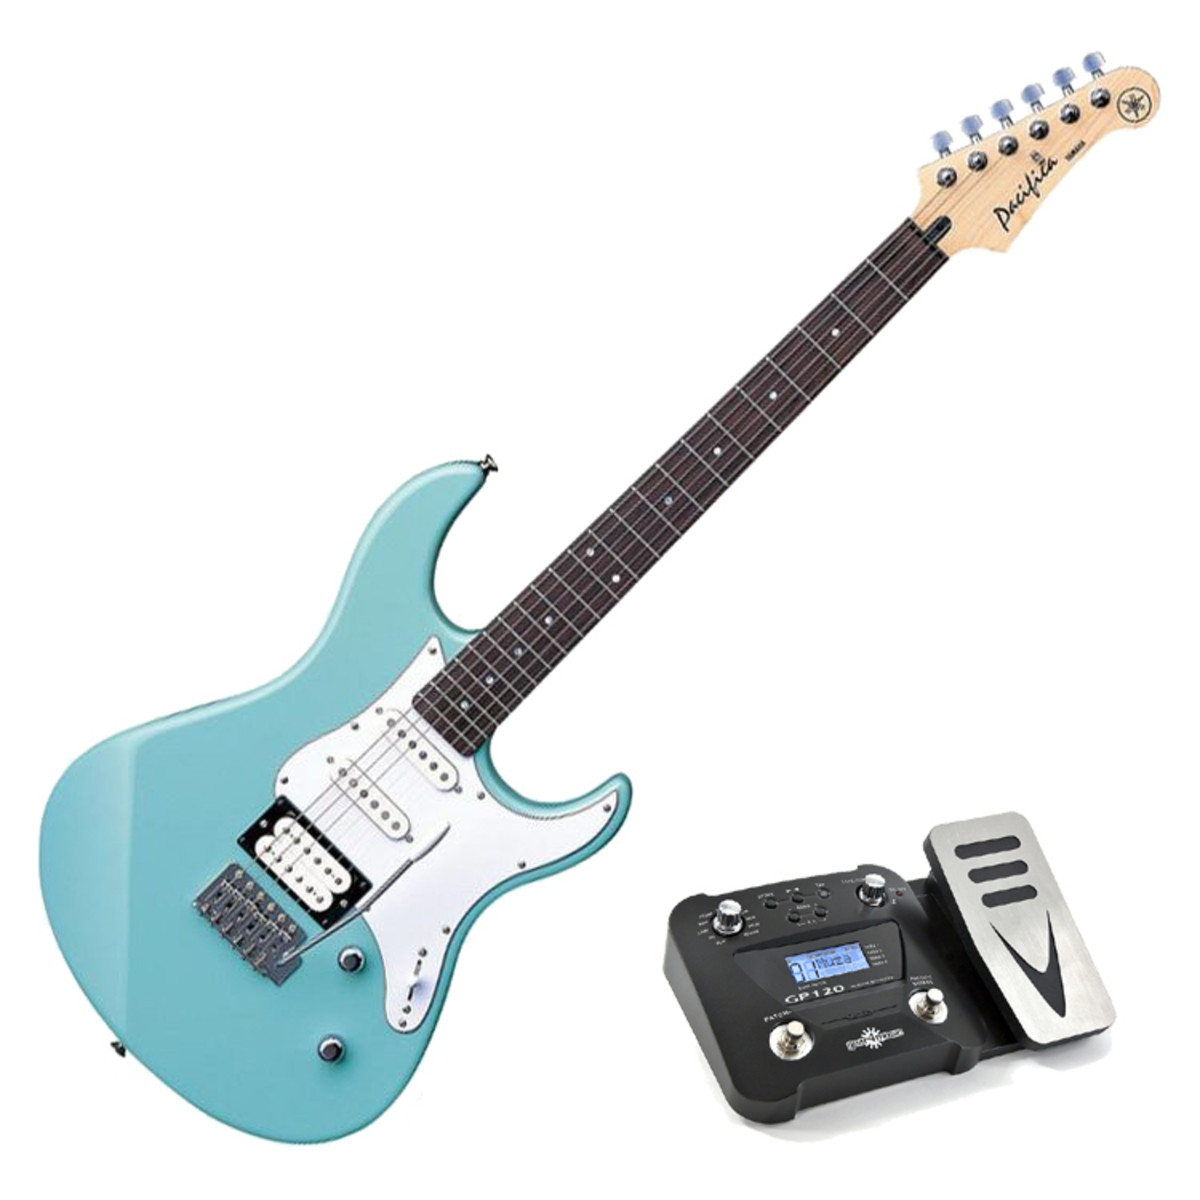 bcbdb5a0fb Yamaha Pacifica 112 V Electric Guitar, Sonic Blue, Pedal Pack. Loading  zoom. Yamaha Pacifica 112 ...